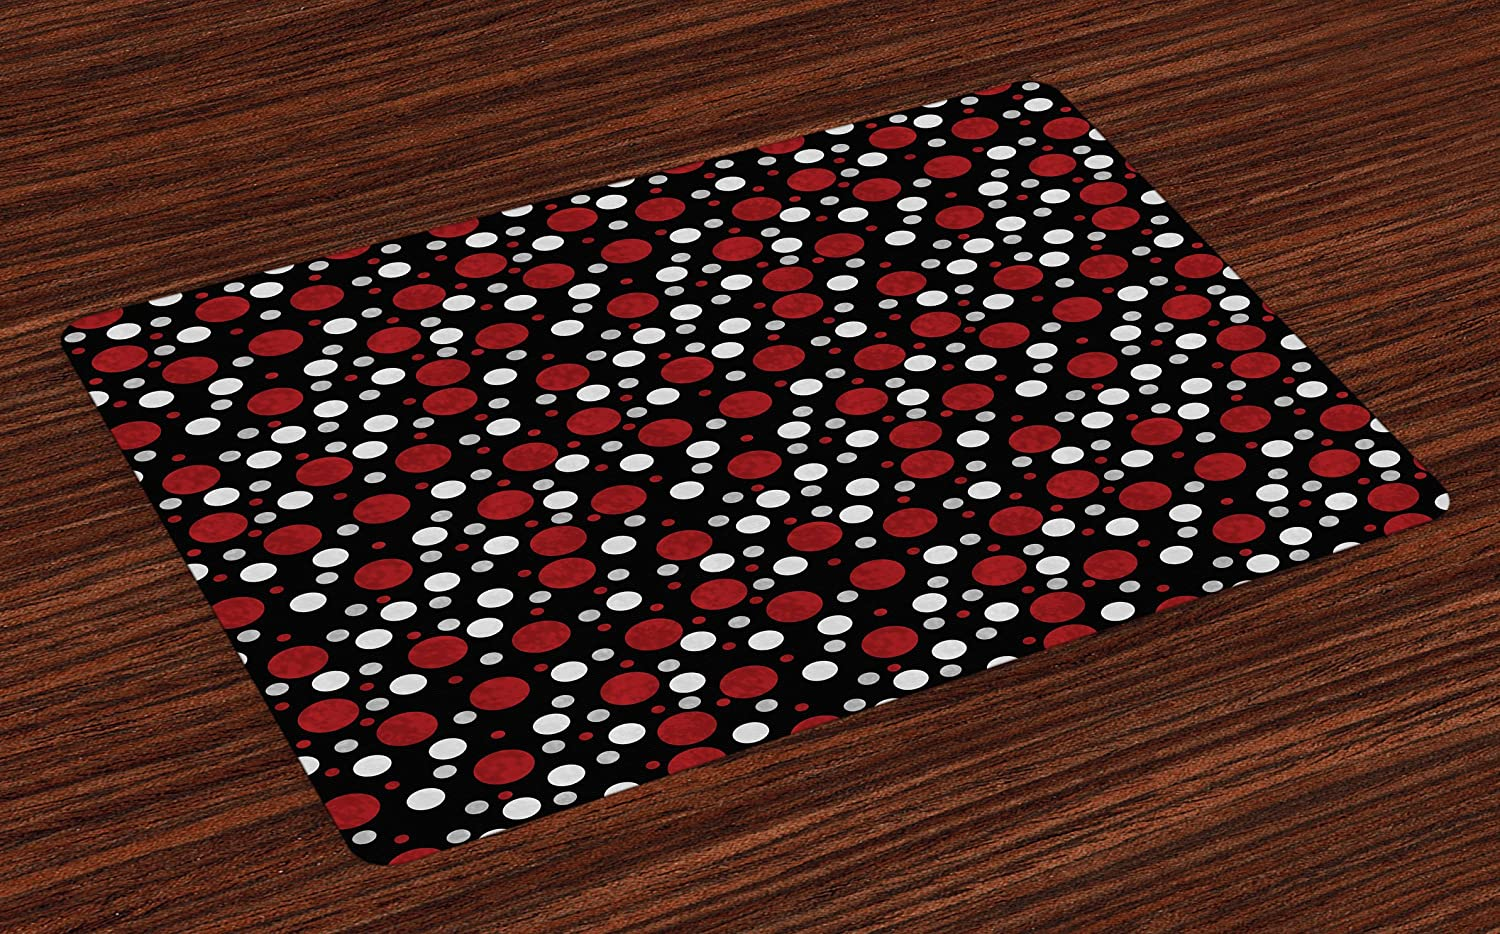 Ambesonne Red and Black Place Mats Set of 4, Retro 60s 70s Cartoon Snow Like Polka Dots Circles Rounds, Washable Fabric Placemats for Dining Room Kitchen Table Decor, White Pale Grey and Burgundy